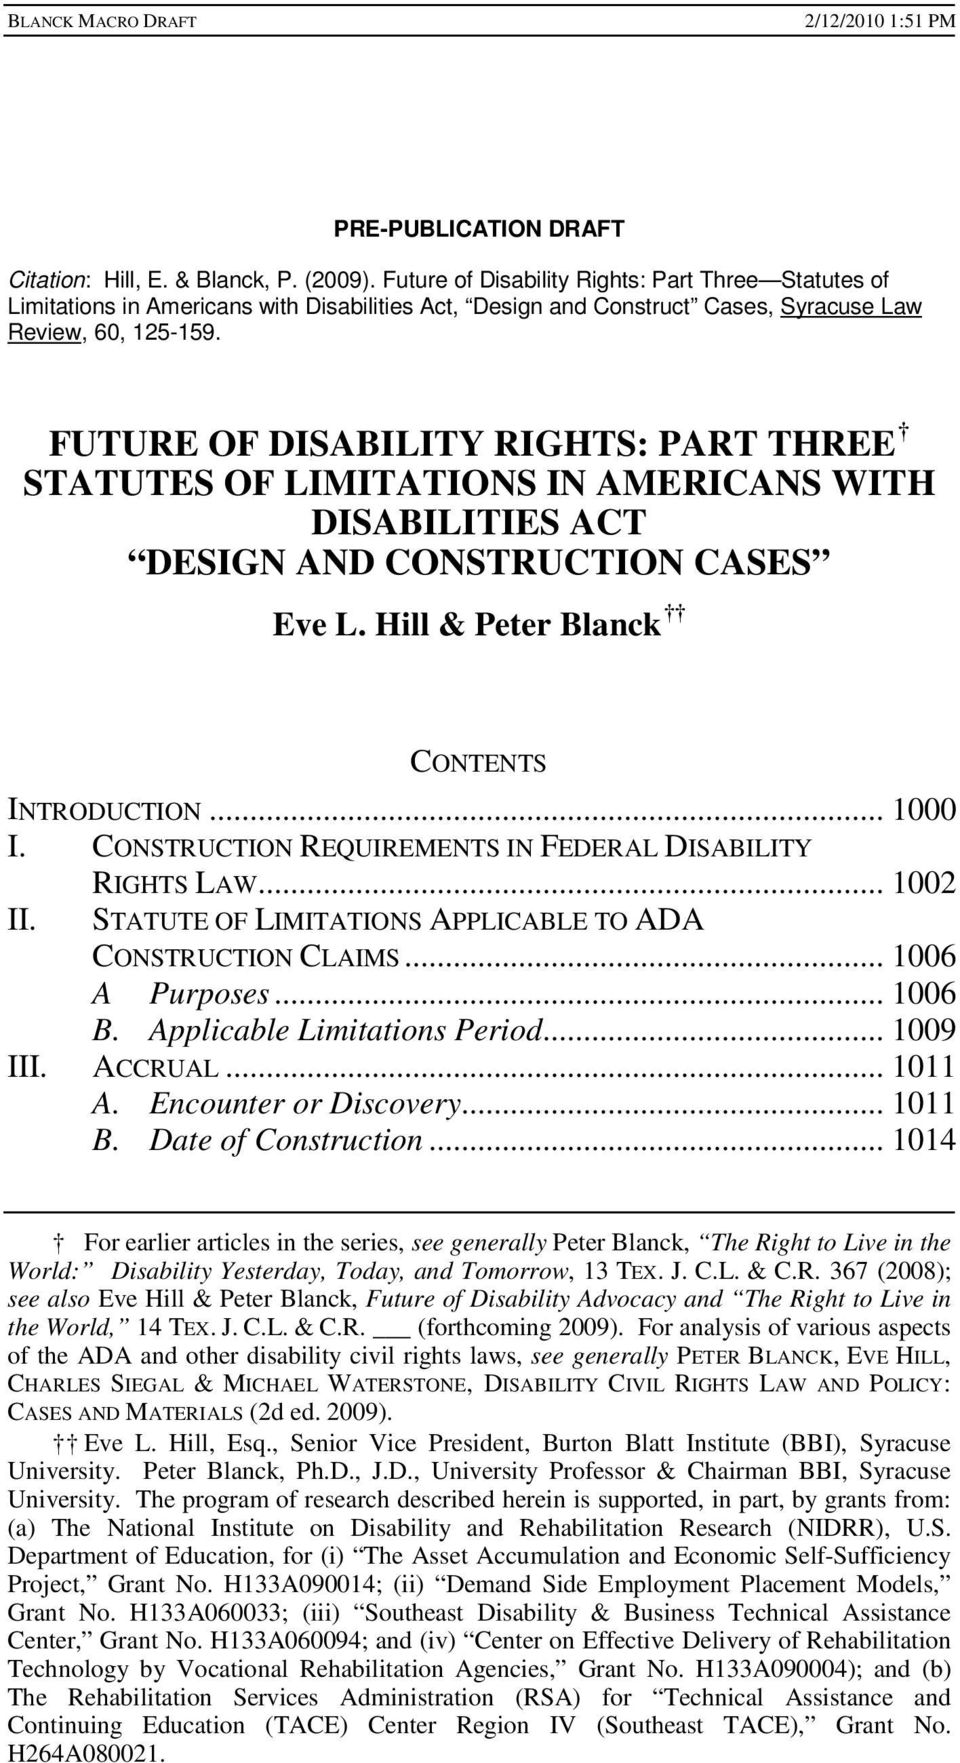 FUTURE OF DISABILITY RIGHTS: PART THREE STATUTES OF LIMITATIONS IN AMERICANS WITH DISABILITIES ACT DESIGN AND CONSTRUCTION CASES Eve L. Hill & Peter Blanck CONTENTS INTRODUCTION... 1000 I.